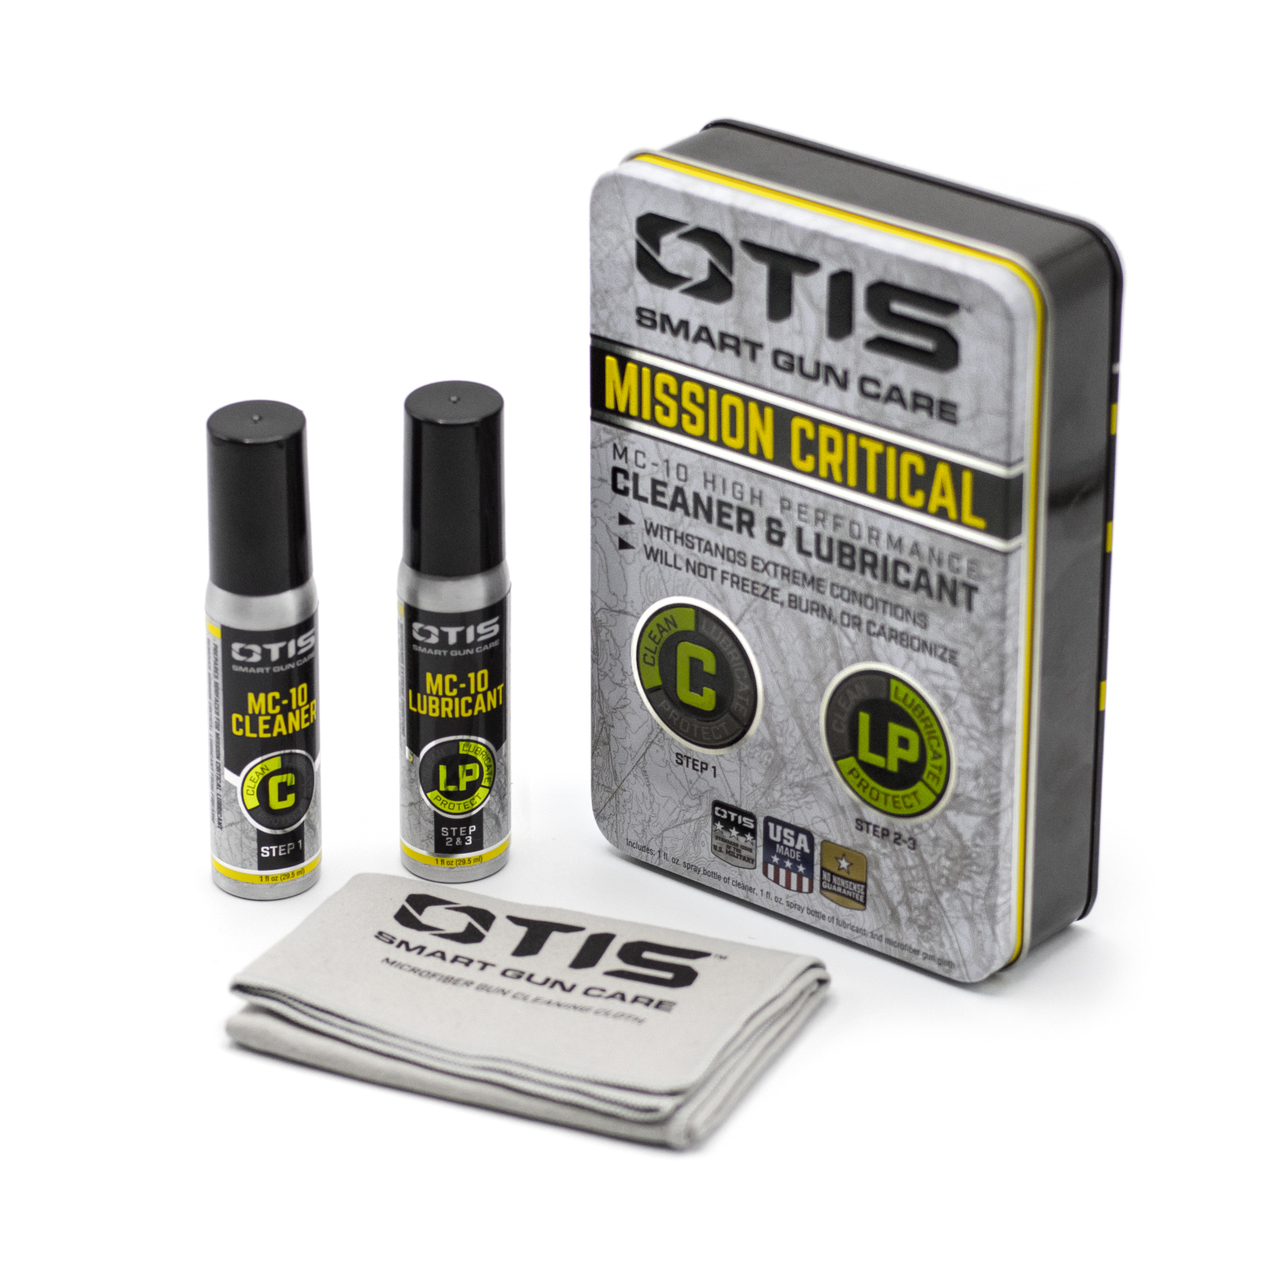 Mission Critical MC-10 High Performance Cleaner & Lubricant